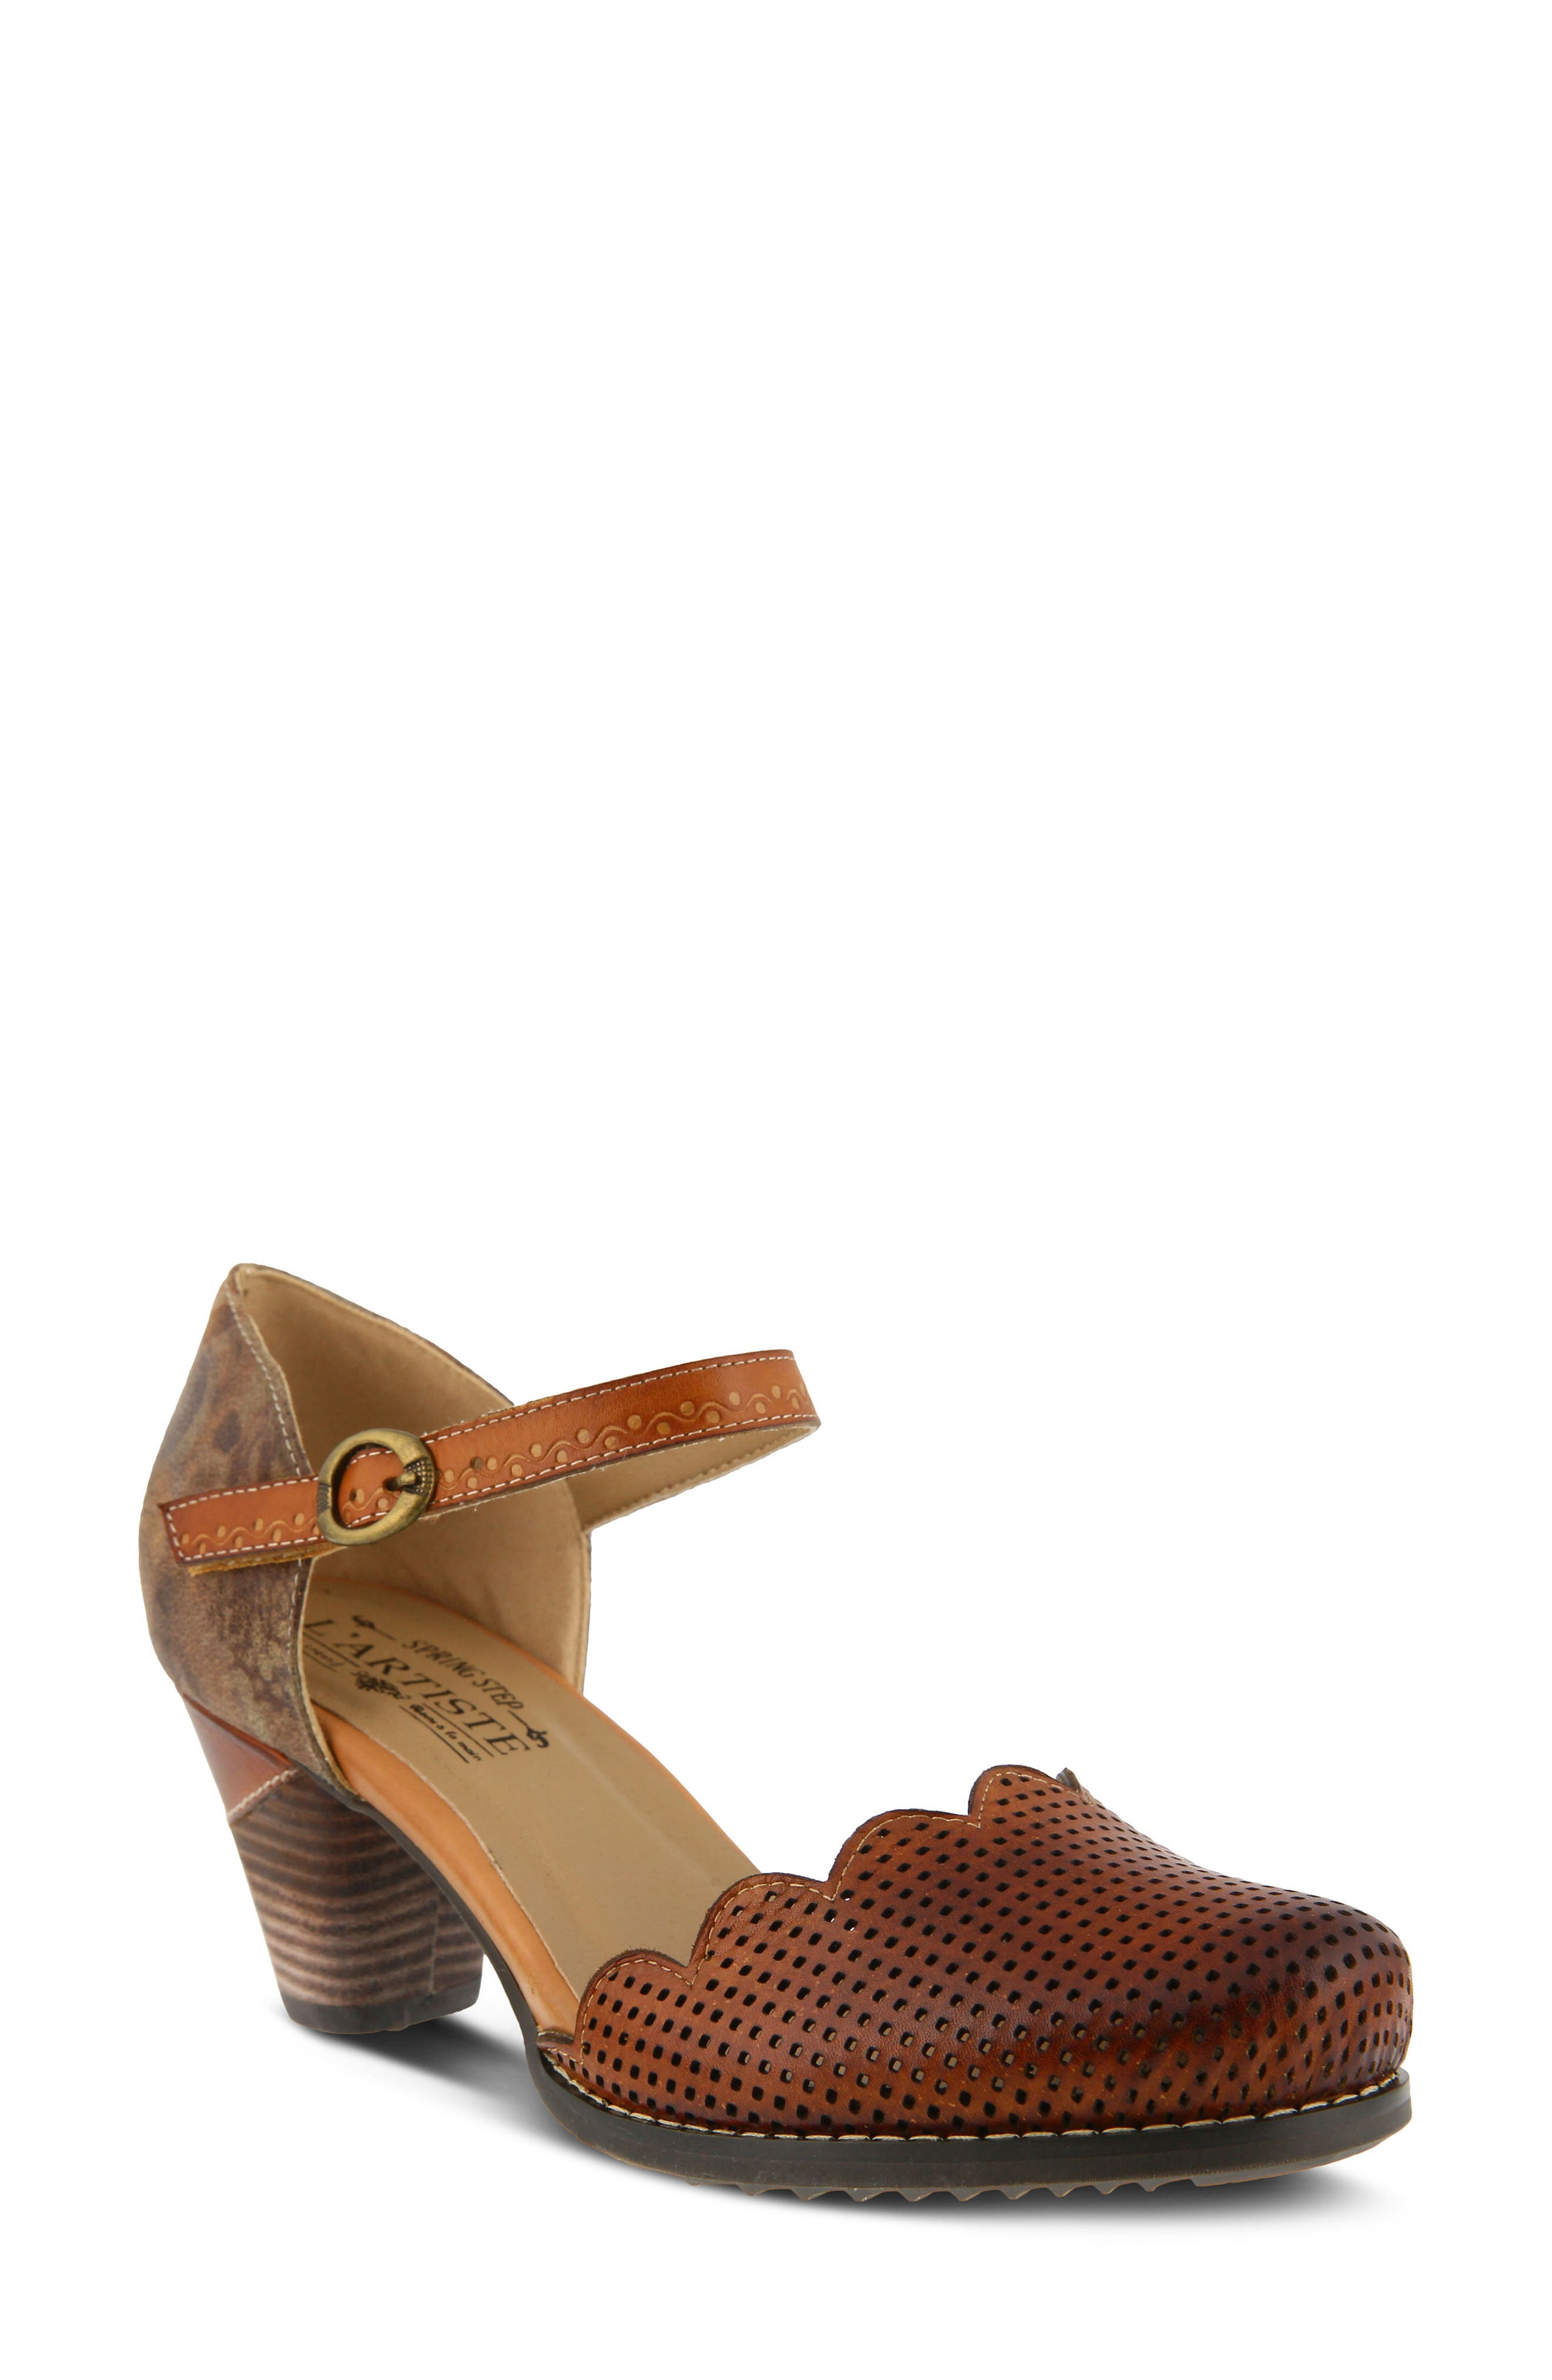 L'Artiste Parchelle Pump,                             Main thumbnail 1, color,                             Camel Leather